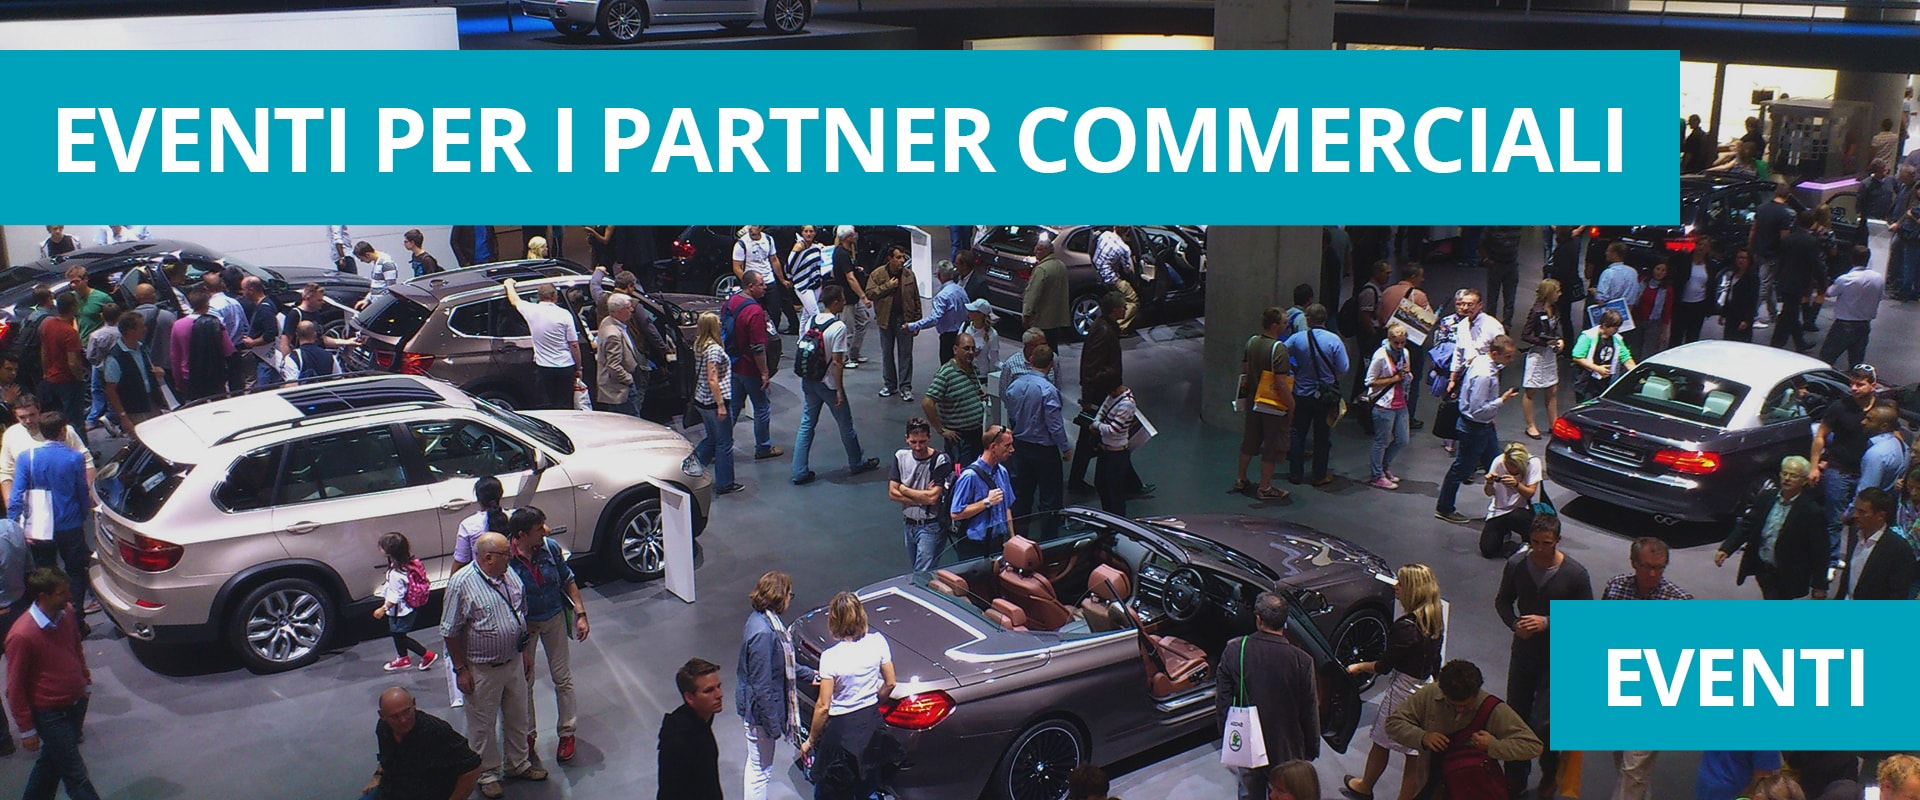 eventi-per-i-partner-commerciali.jpg